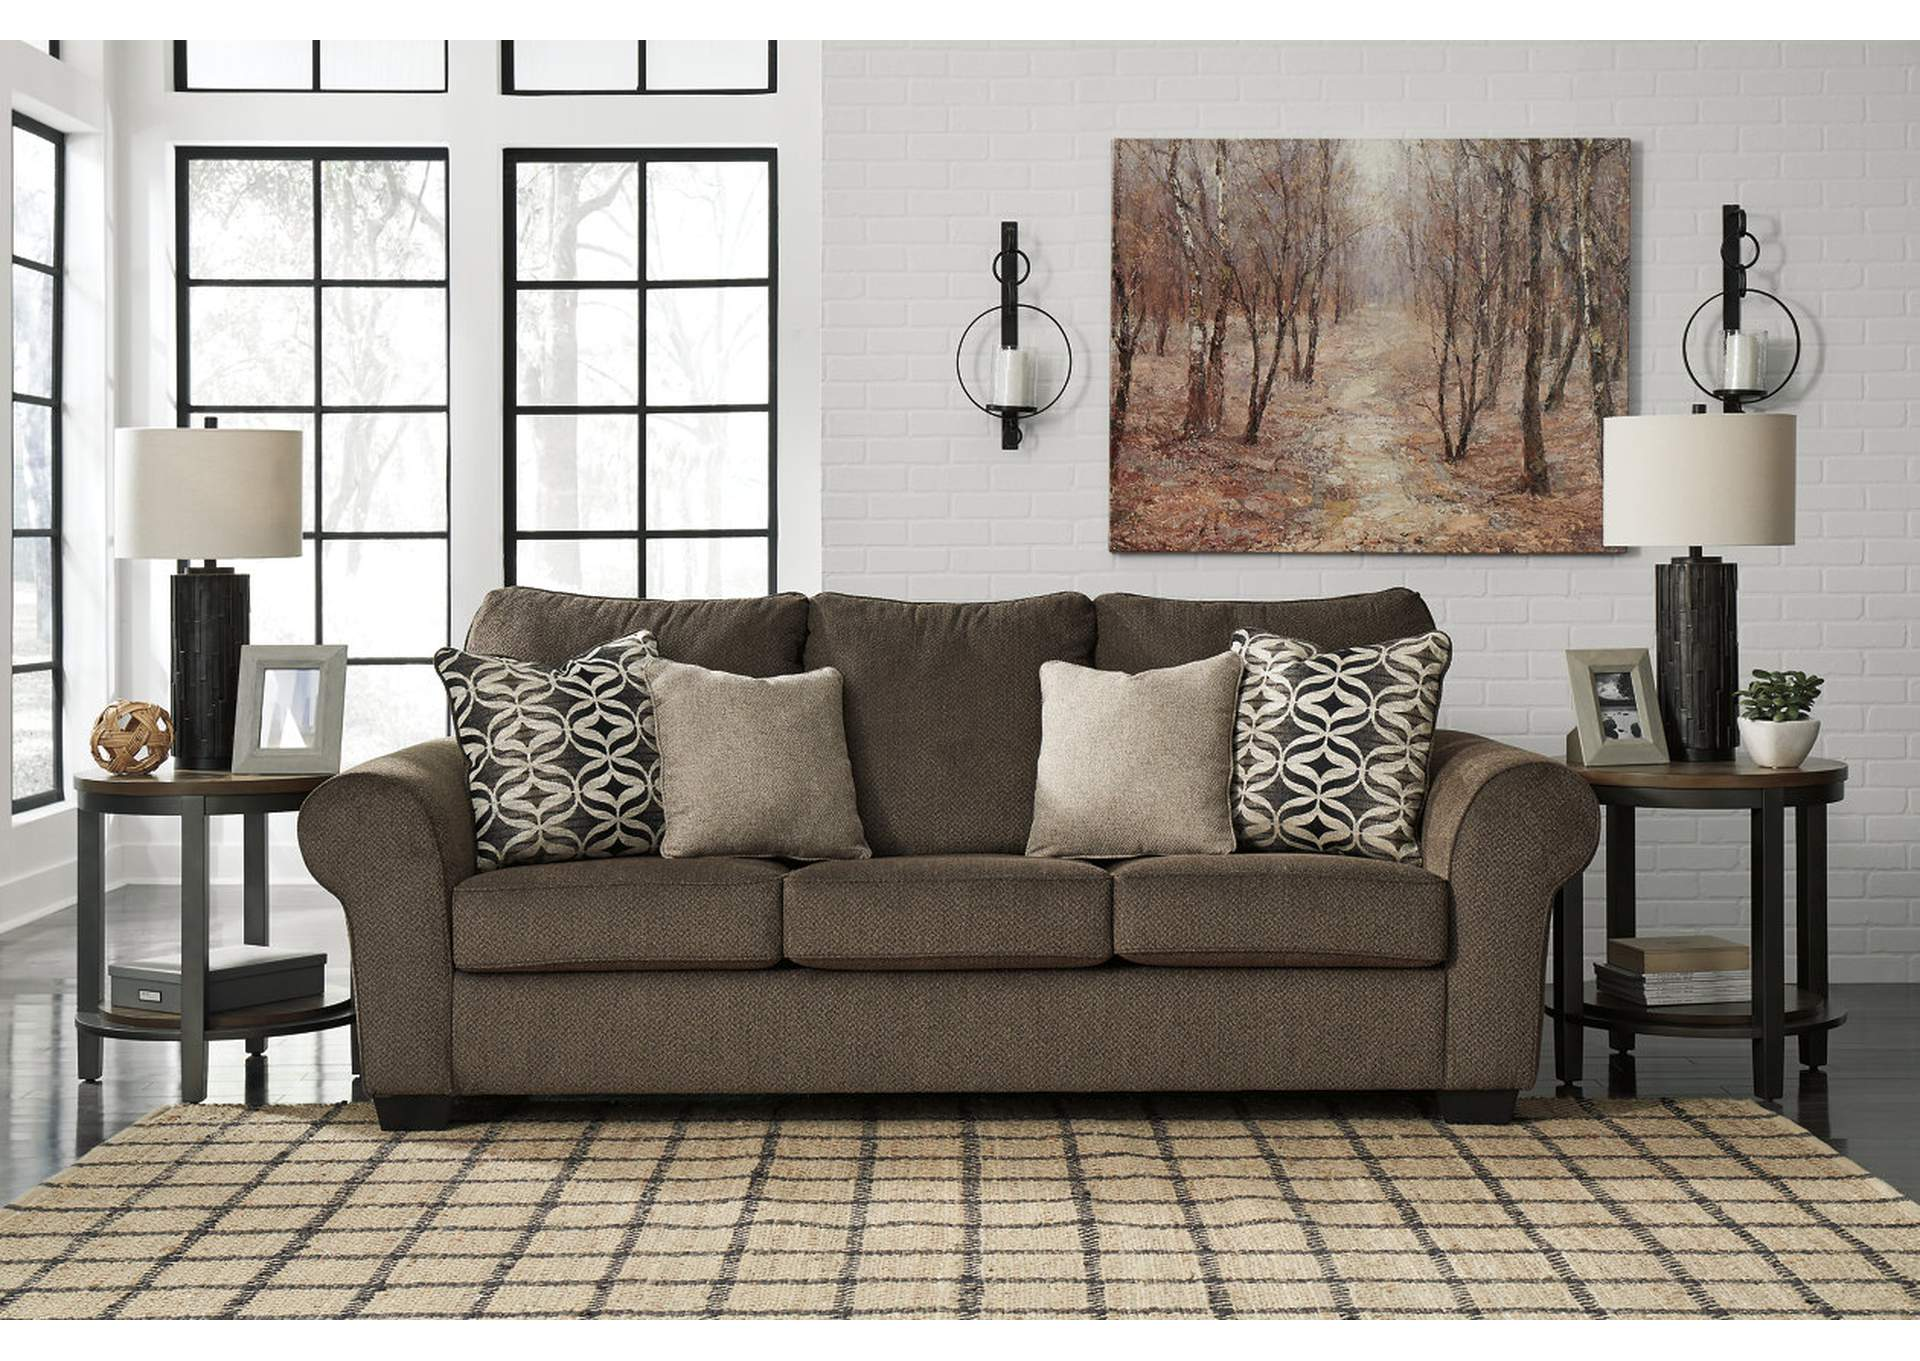 Nesso Walnut Queen Sofa Sleeper,Benchcraft